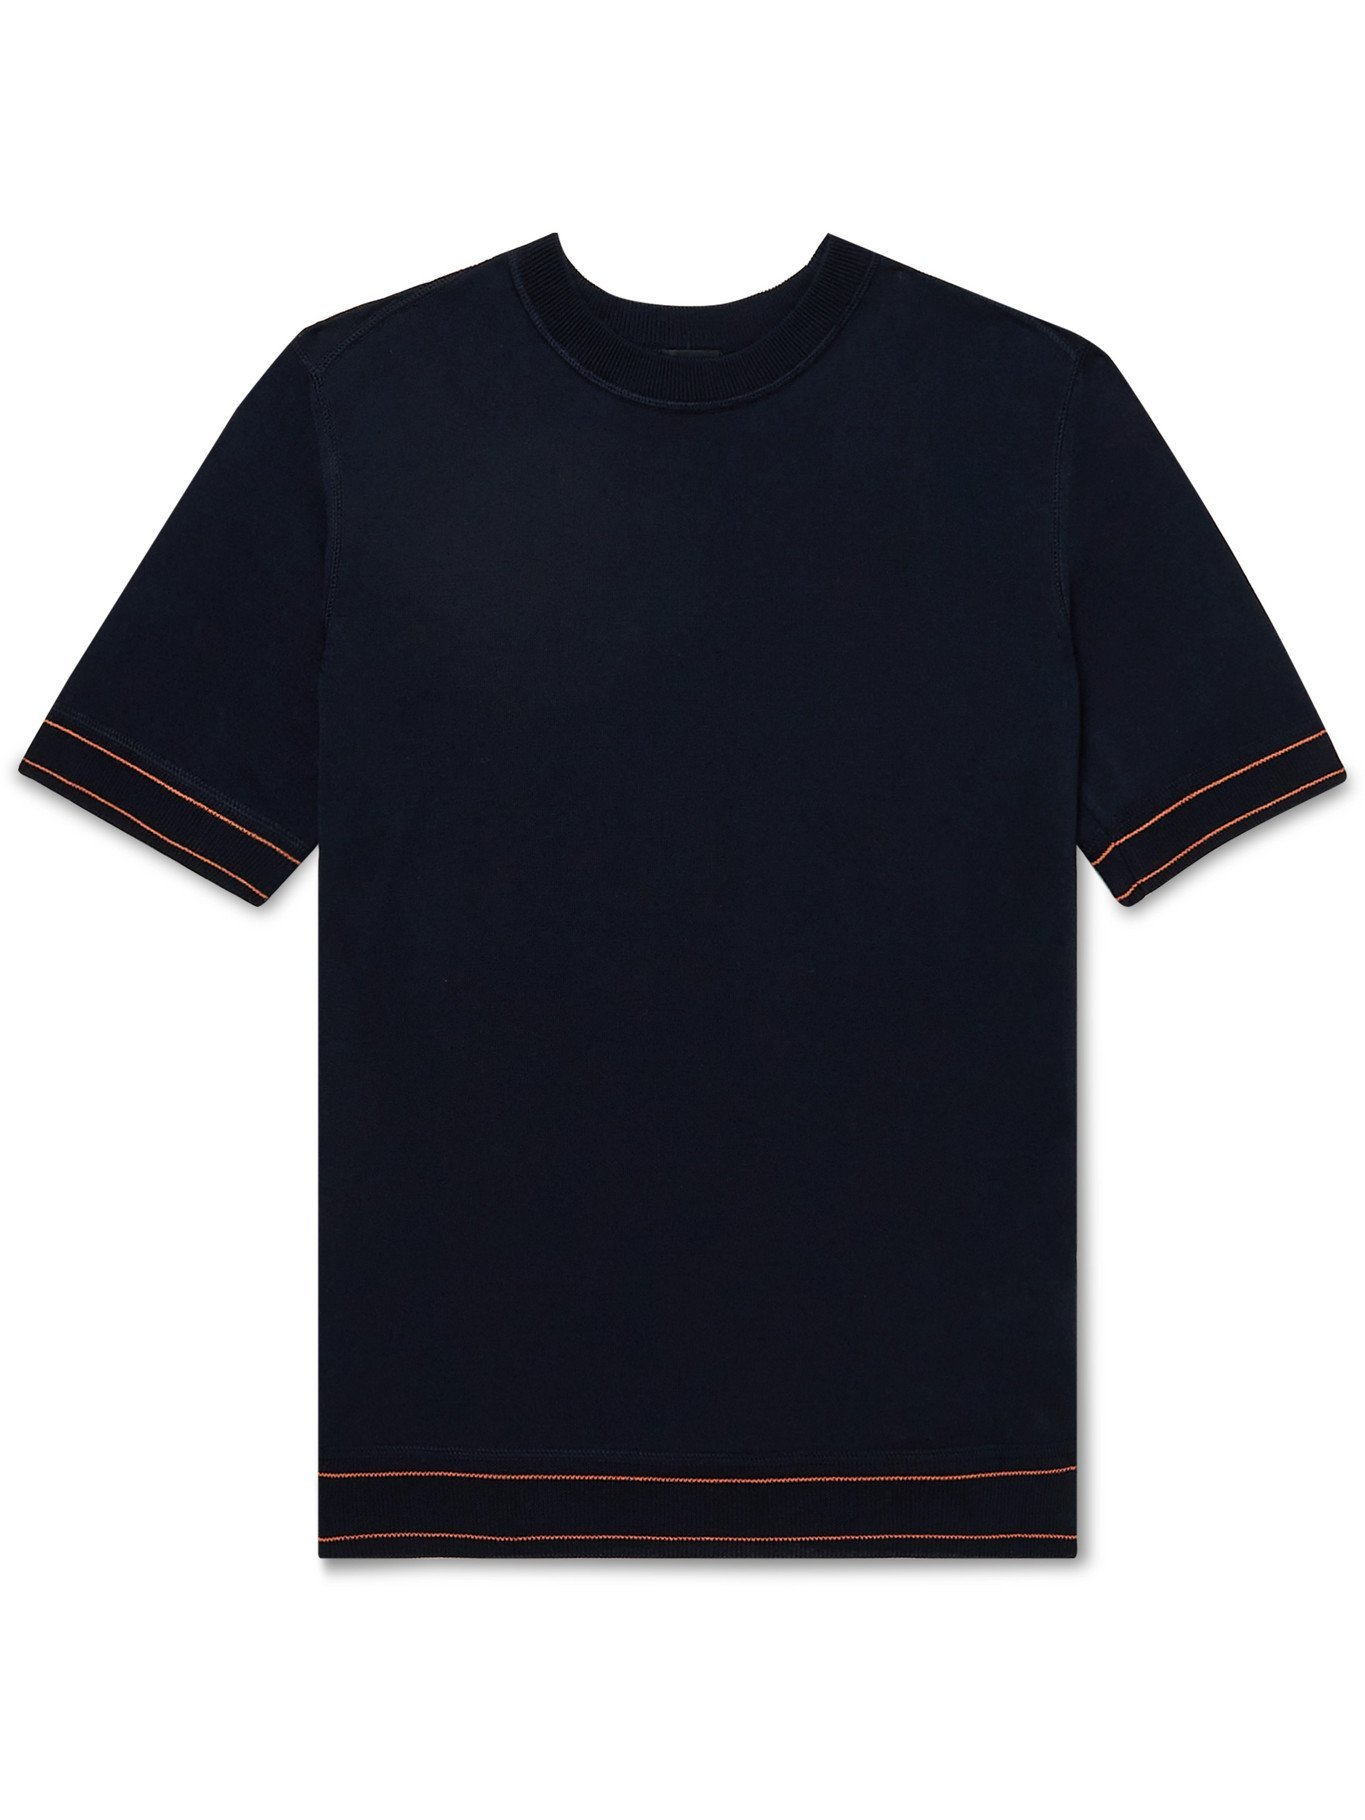 HUGO BOSS - Contrast-Tipped Knitted Cotton T-Shirt - Blue